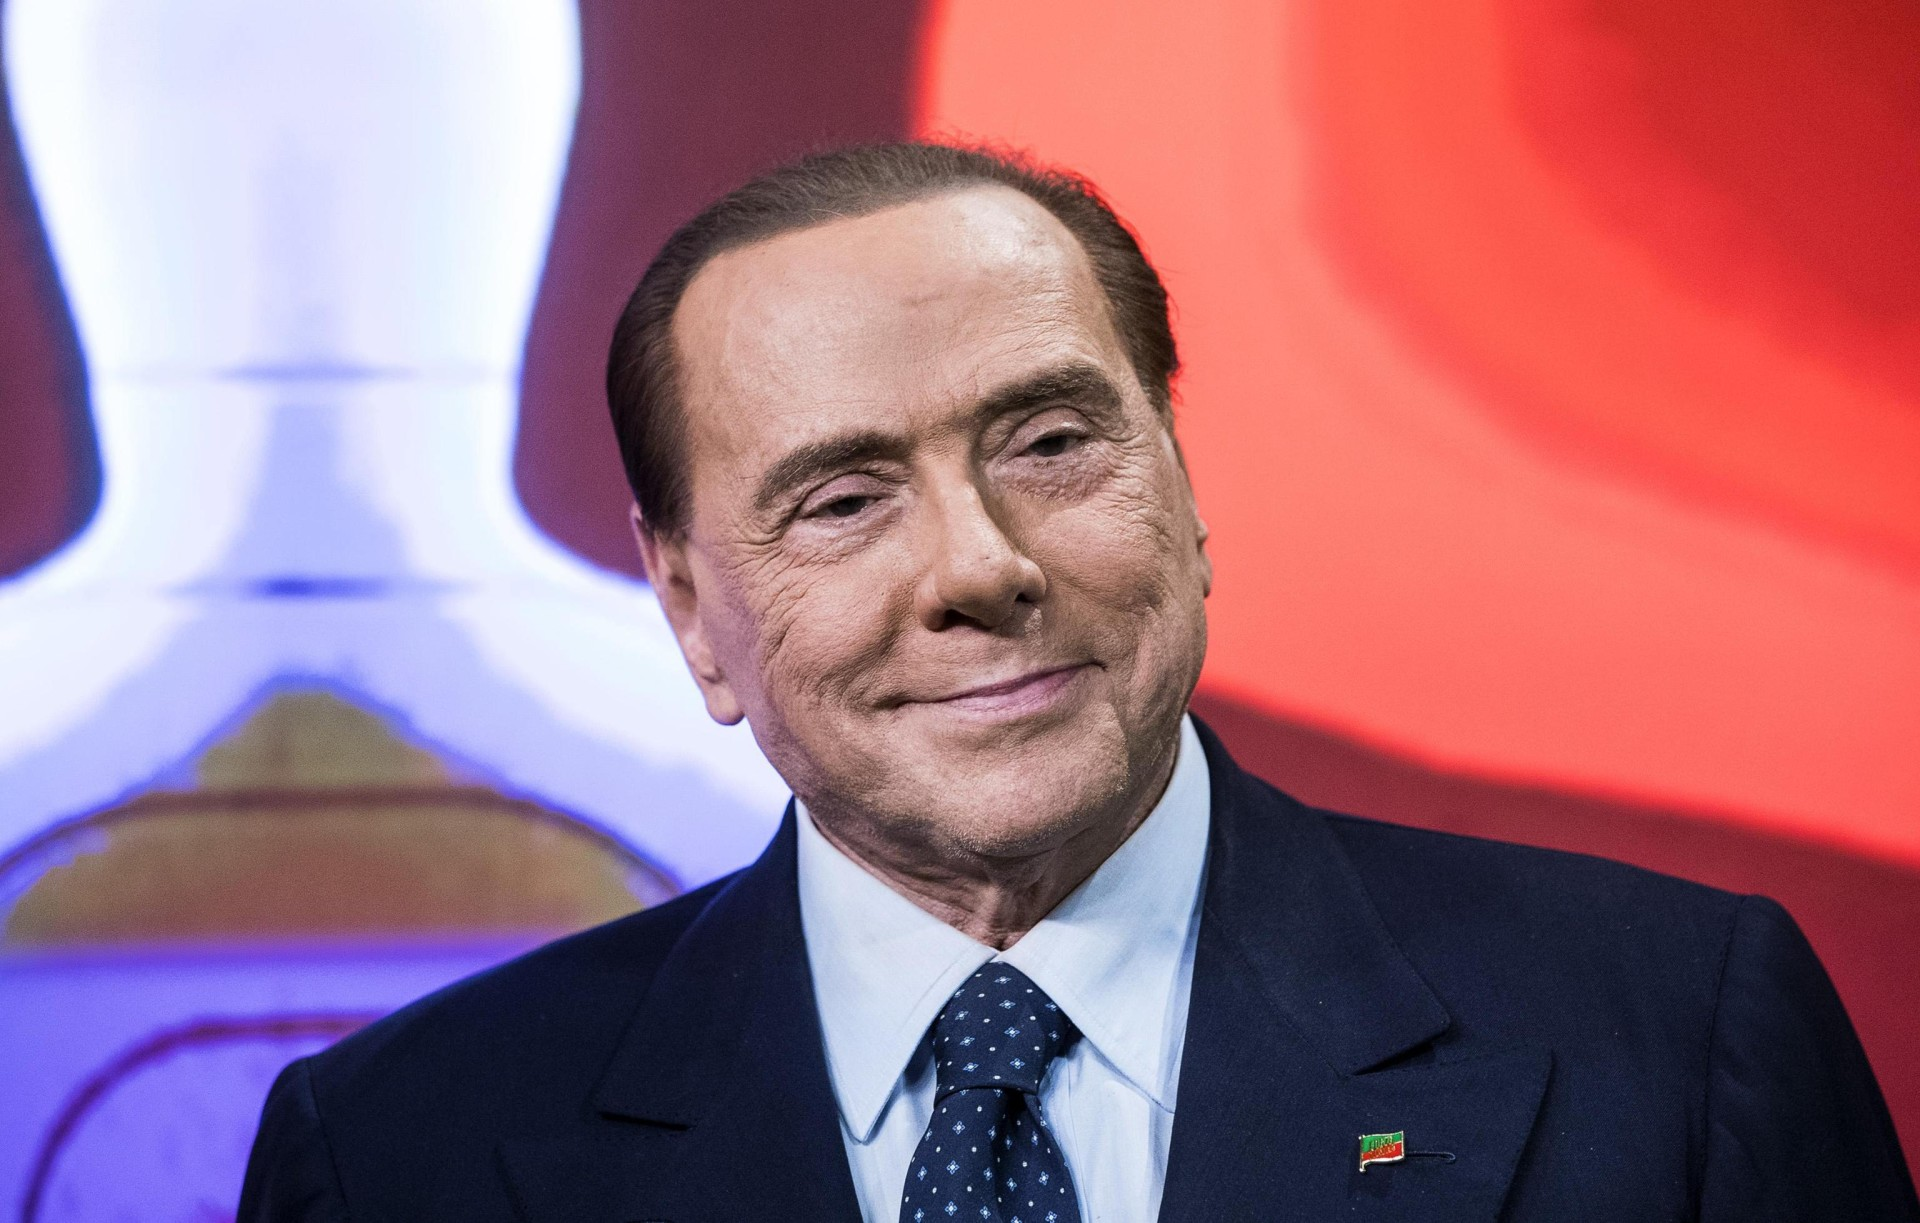 Fotos de berlusconi sin censura 87